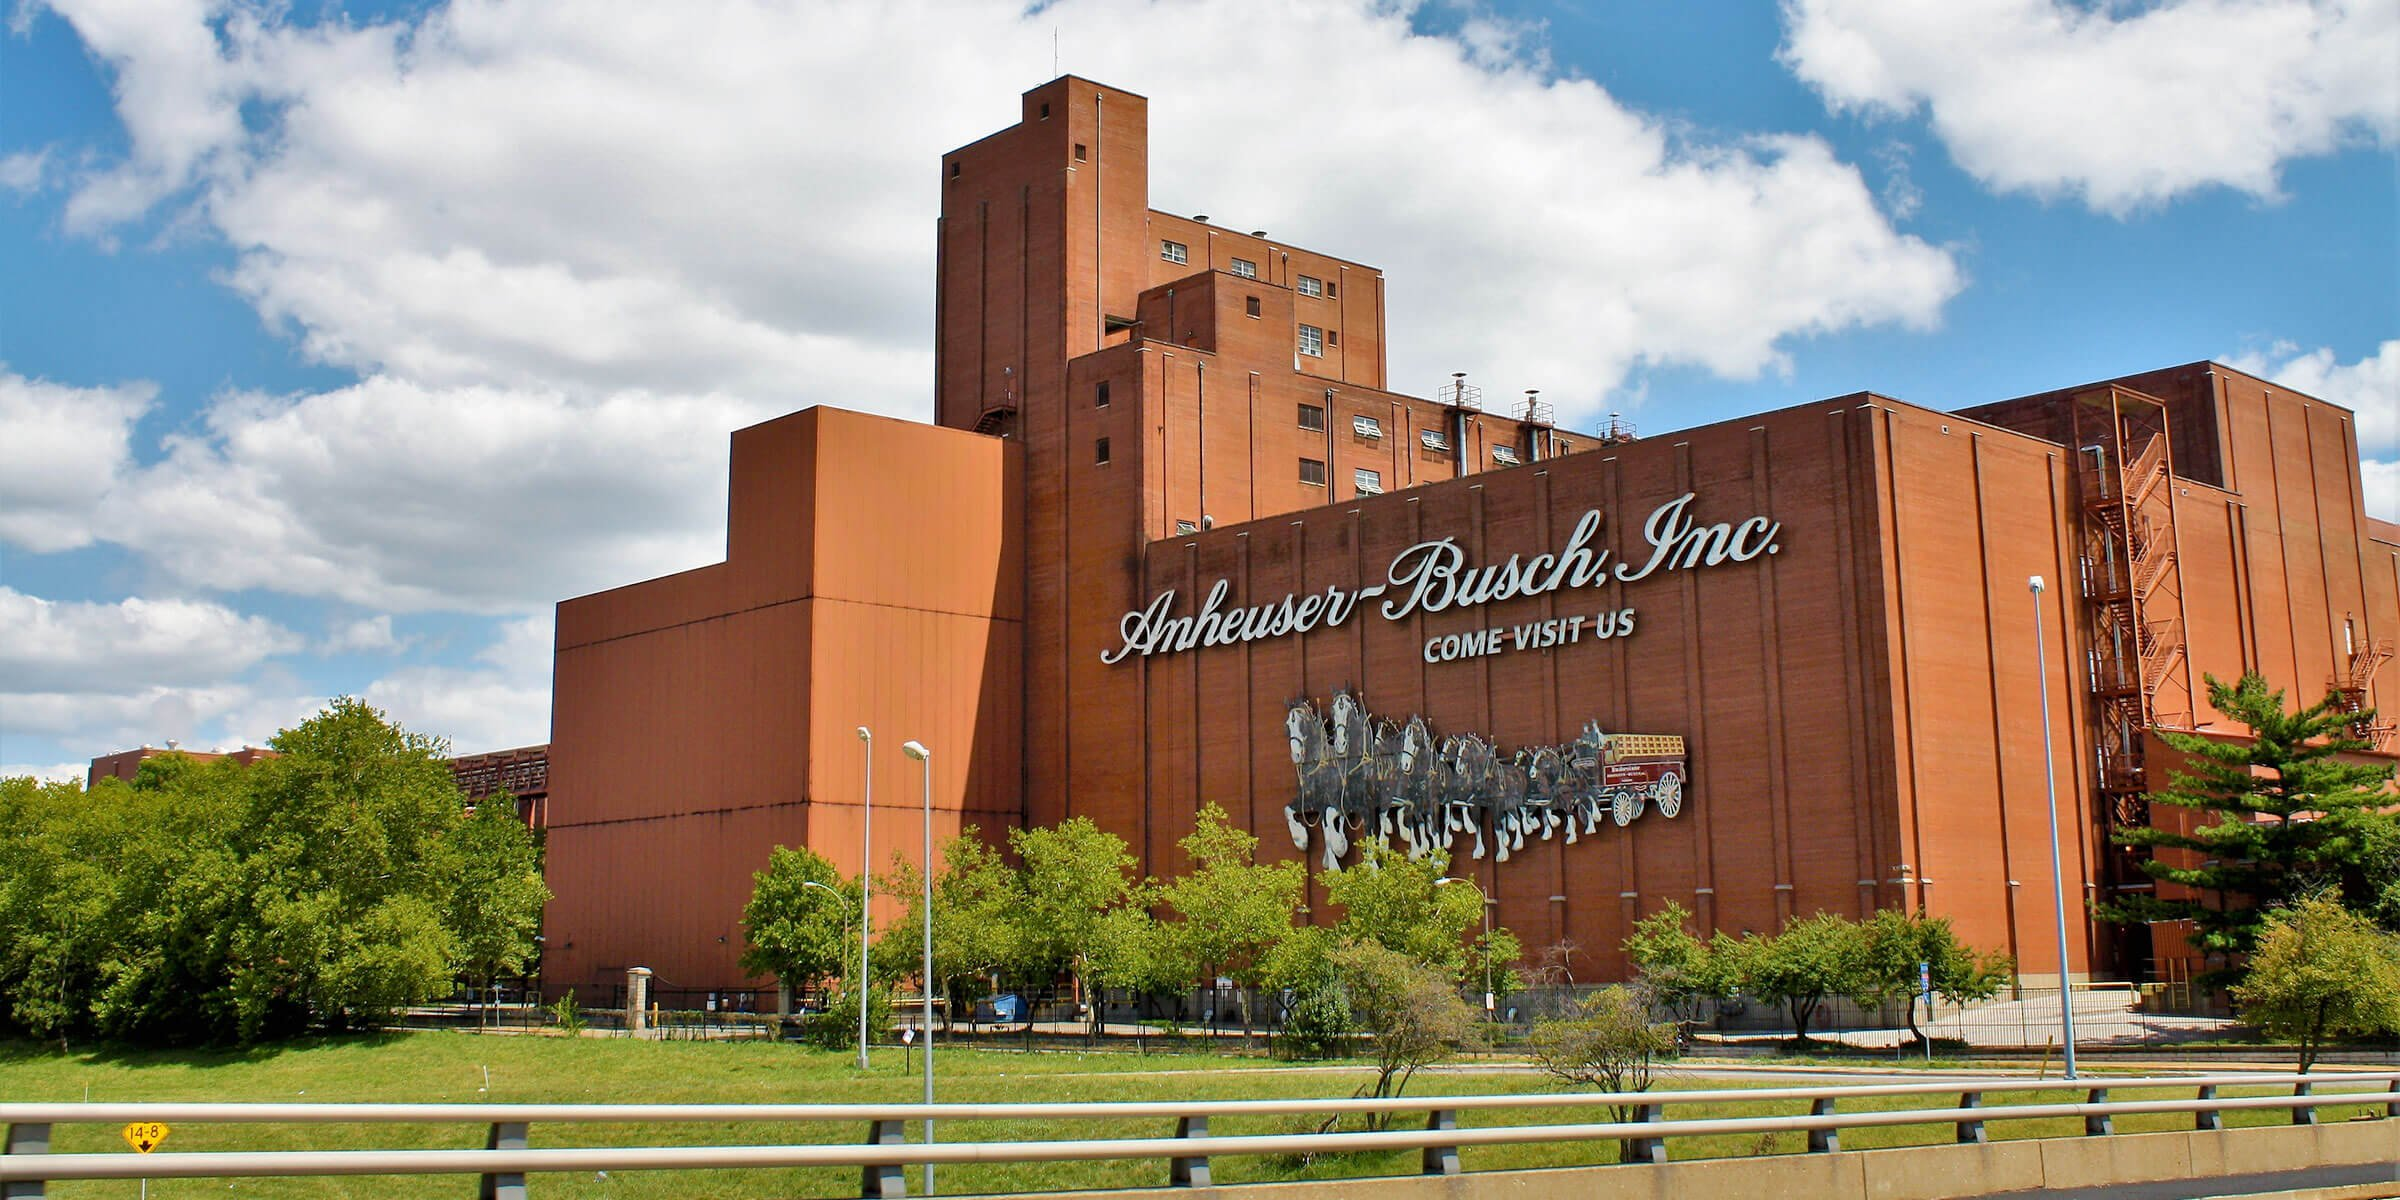 Outside the Anheuser-Busch St. Louis Brewery in St. Louis, Missouri